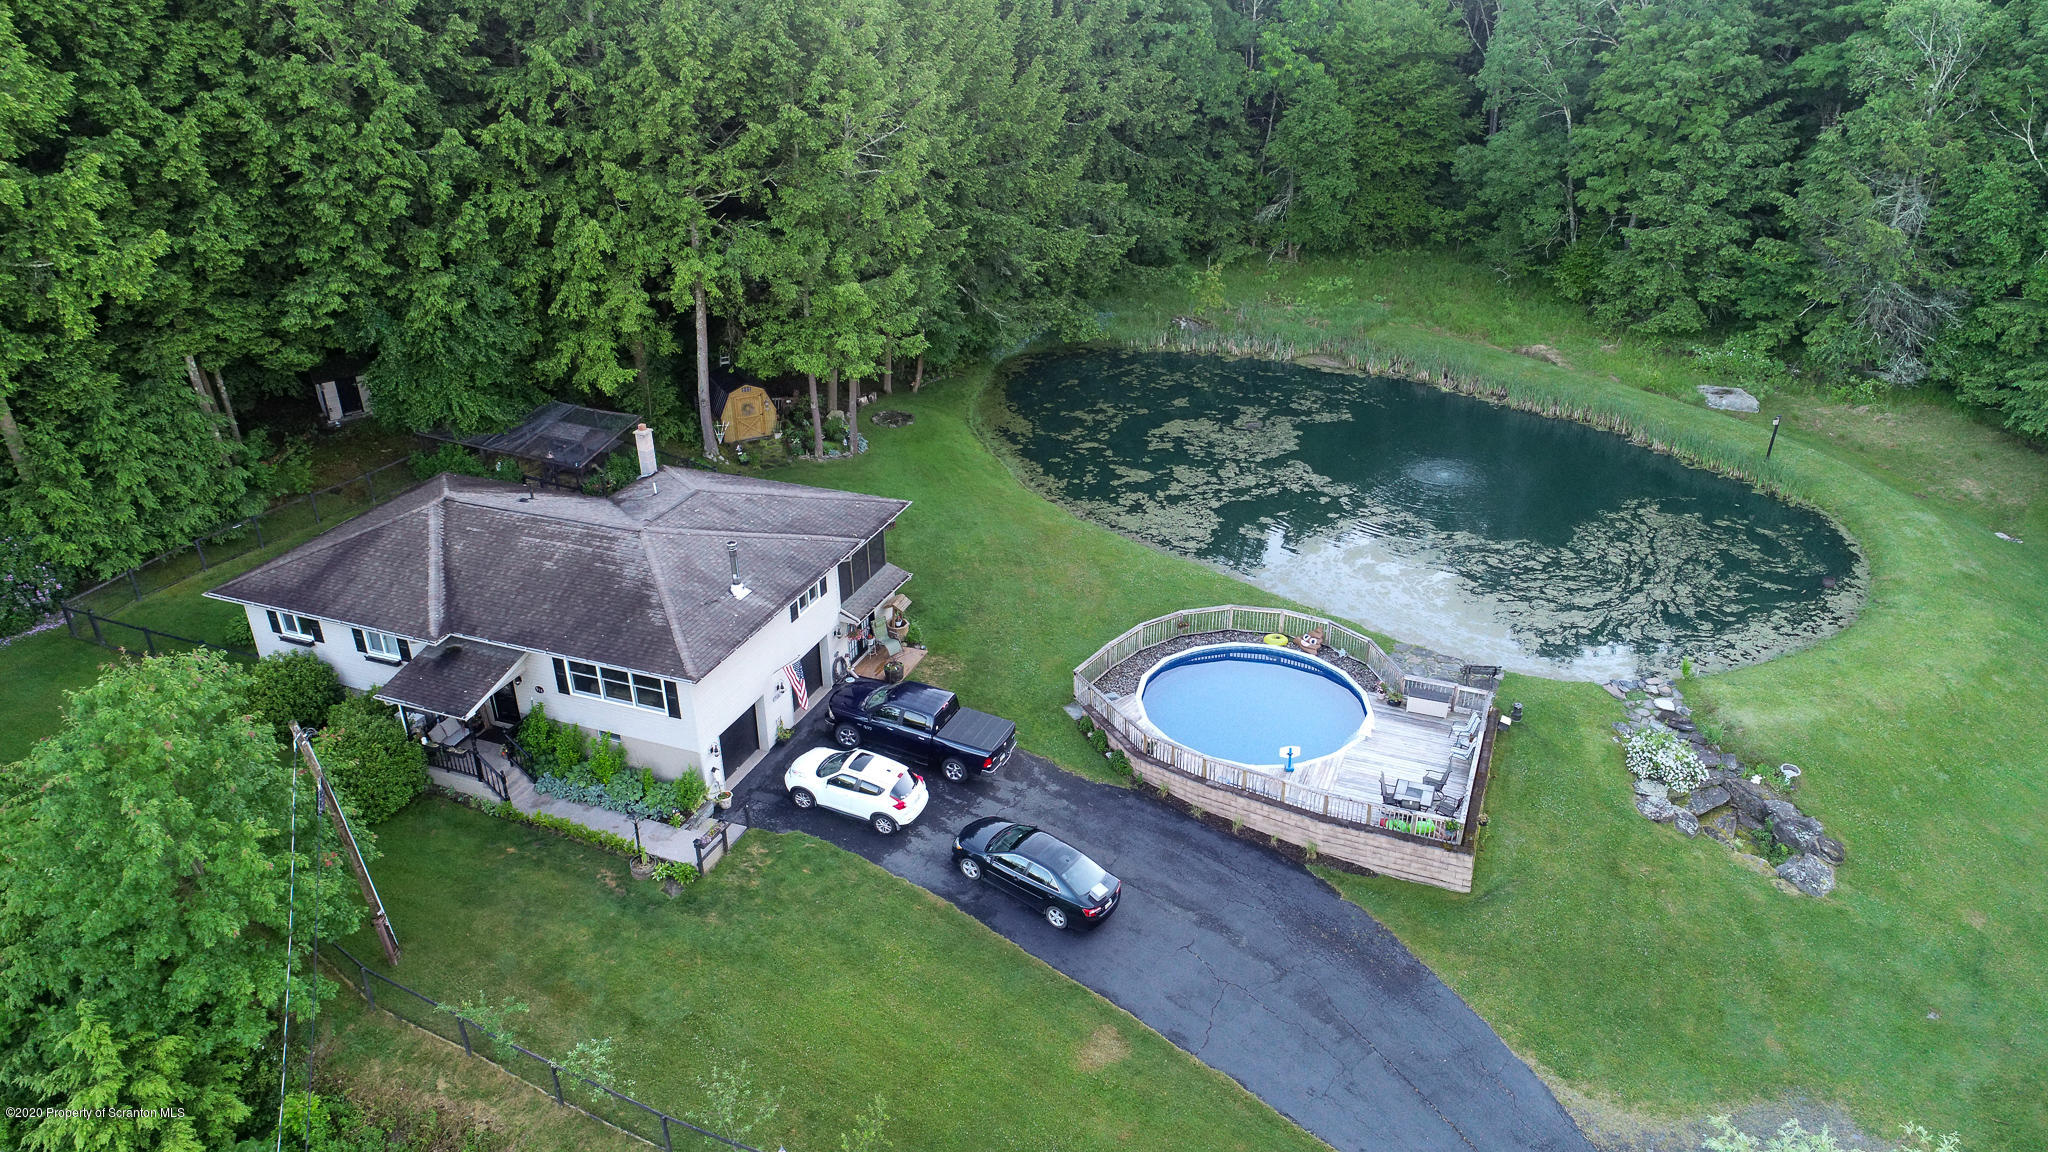 513 Bell Mountain Rd, Greenfield Twp, Pennsylvania 18407, 3 Bedrooms Bedrooms, 8 Rooms Rooms,3 BathroomsBathrooms,Single Family,For Sale,Bell Mountain,20-2221